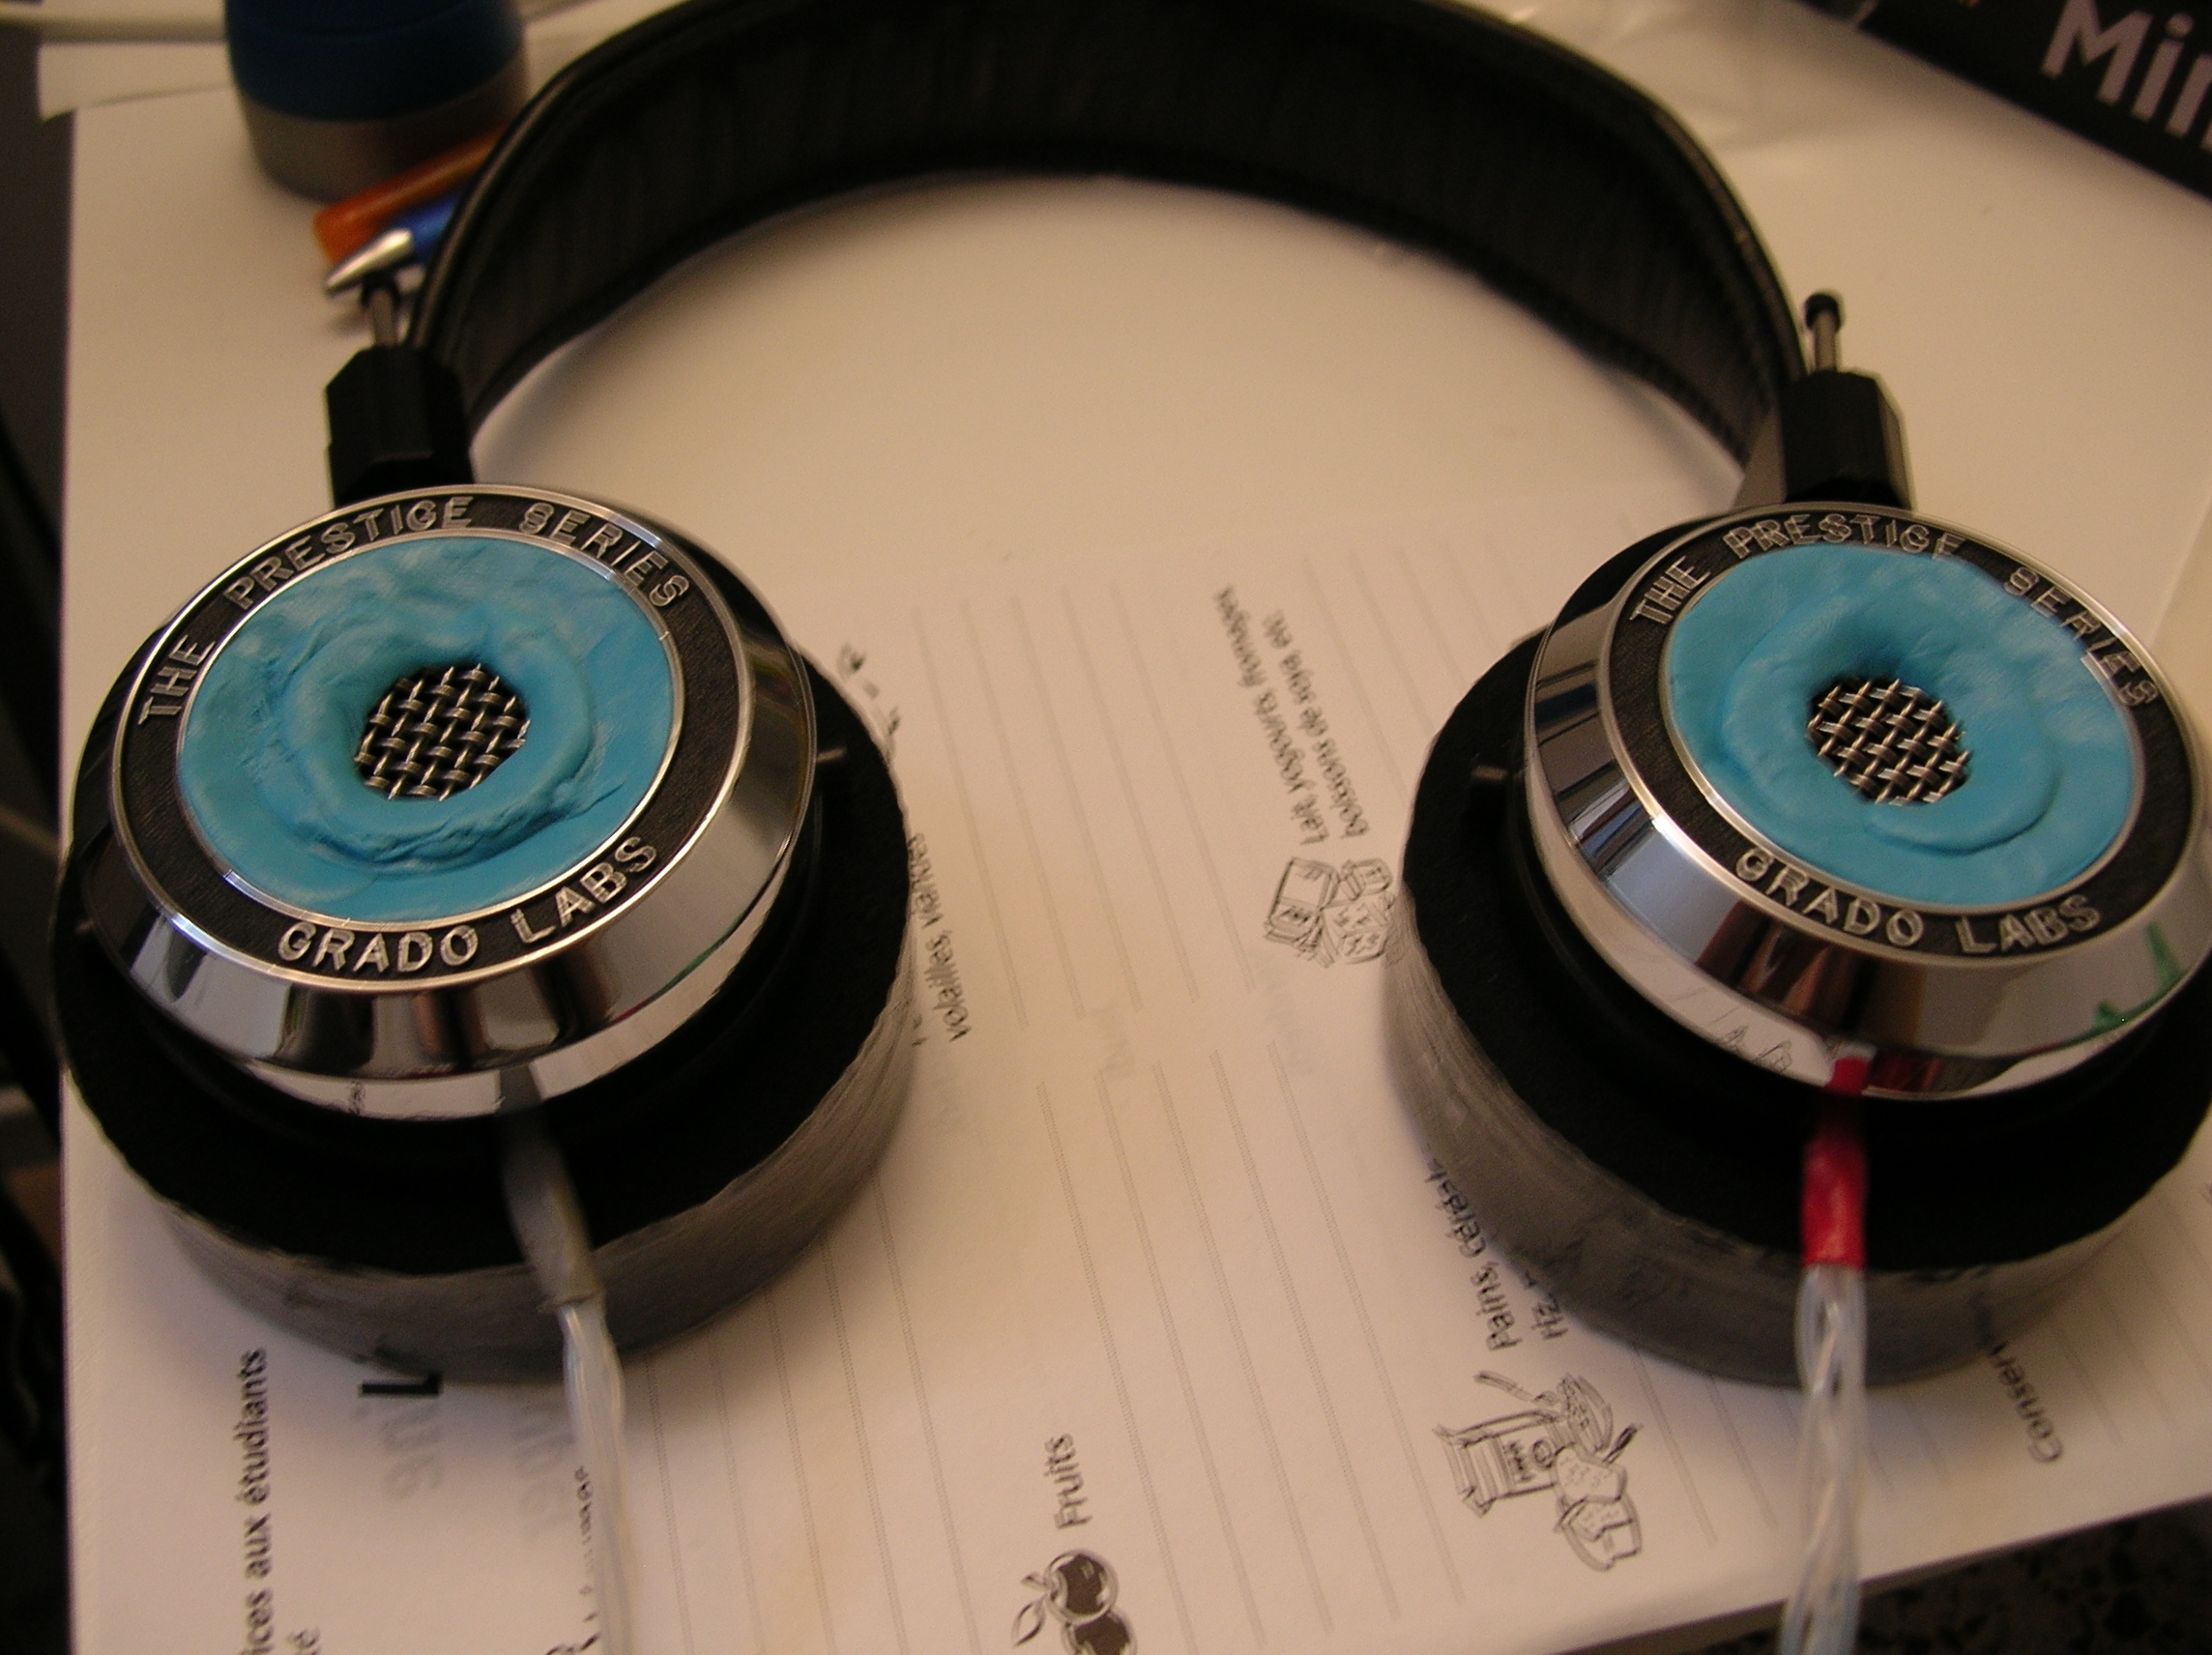 Grado pads – taped TTVJ flats: has anyone tried this before